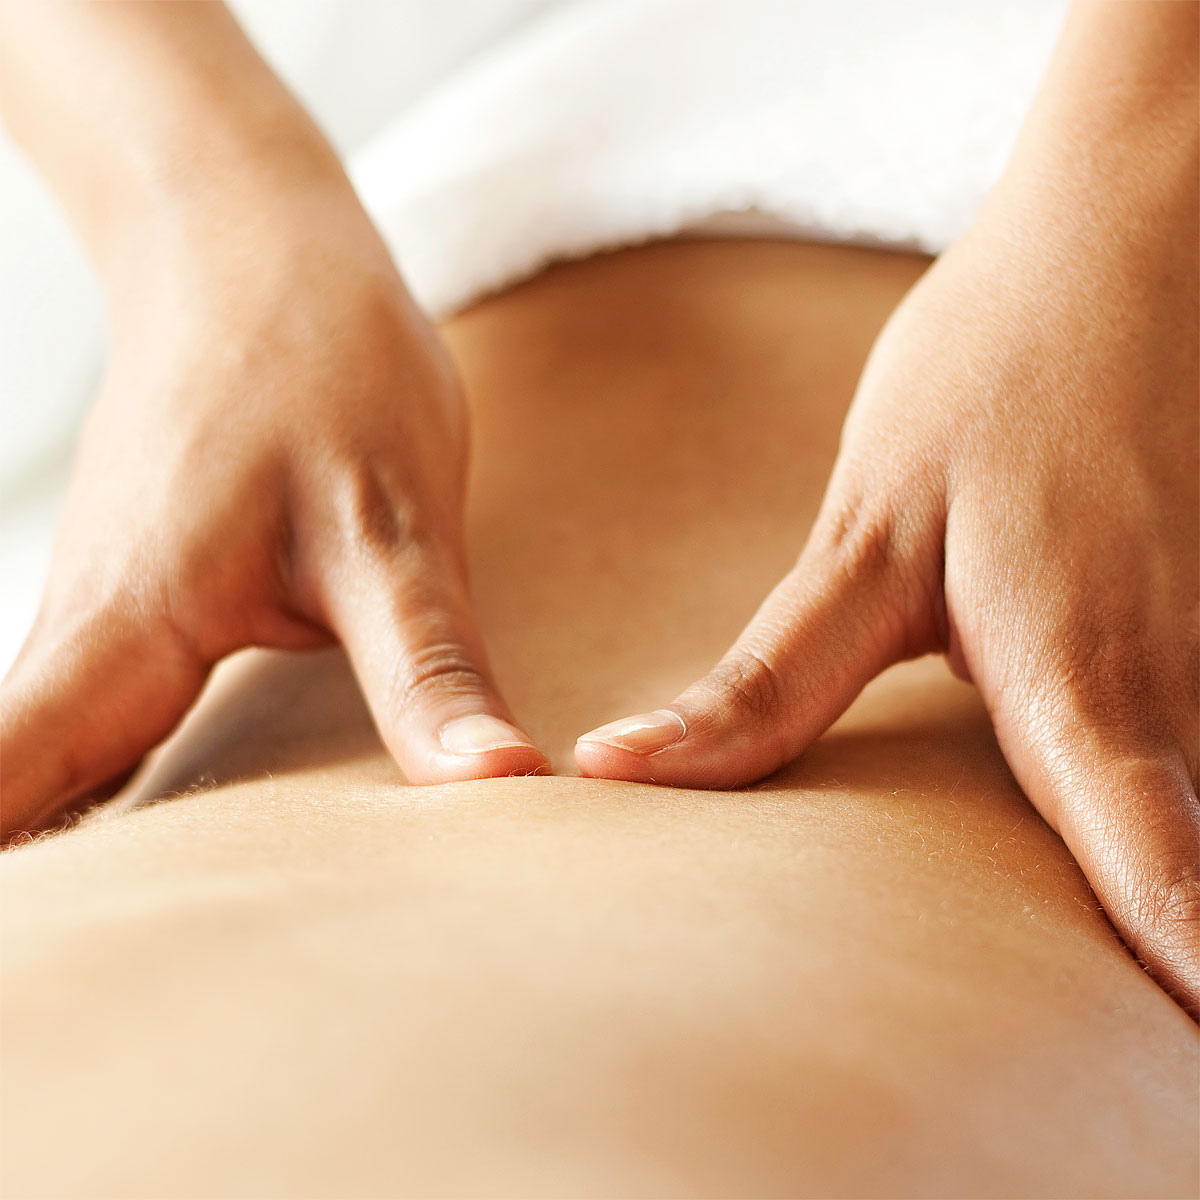 Calgary Registered Massage Therapists giving deep tissue massage for sports injury